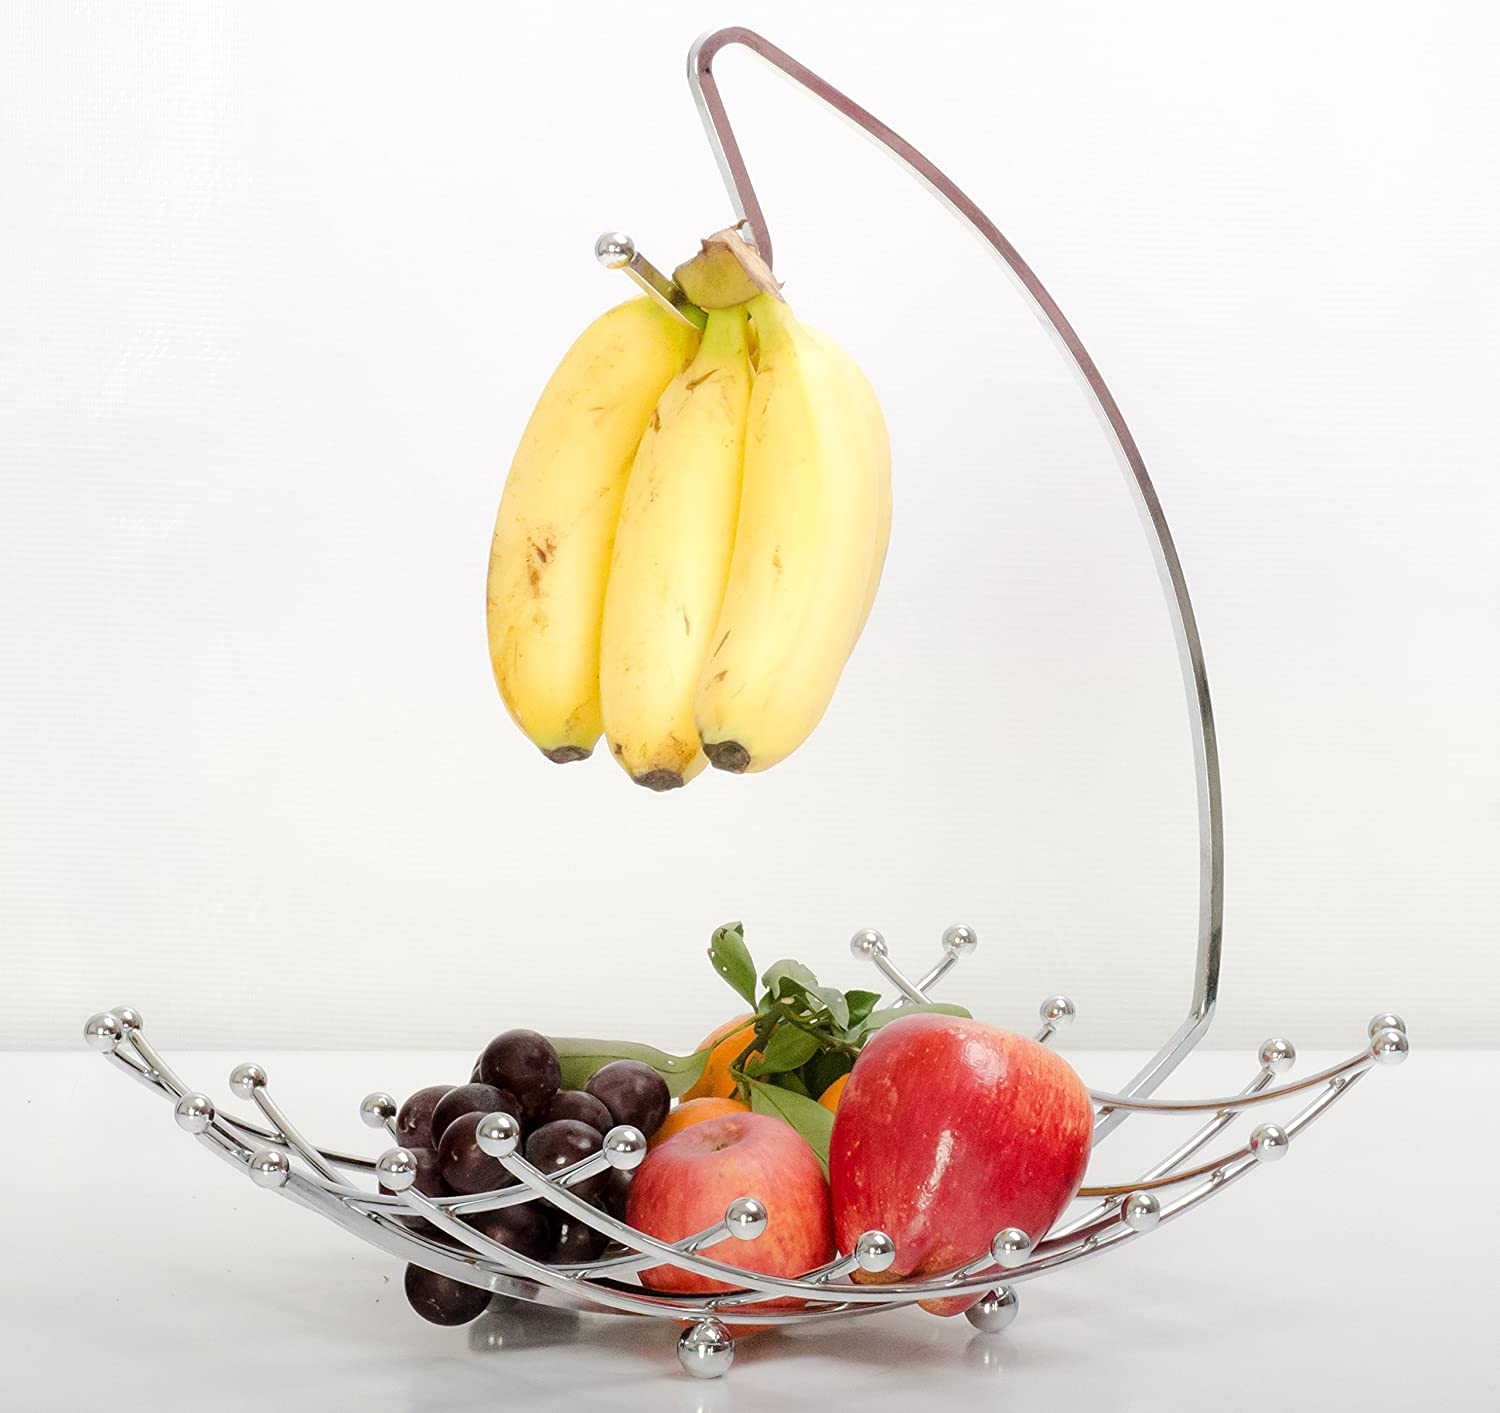 Amazon.com: Fruit Plates: Home & Kitchen